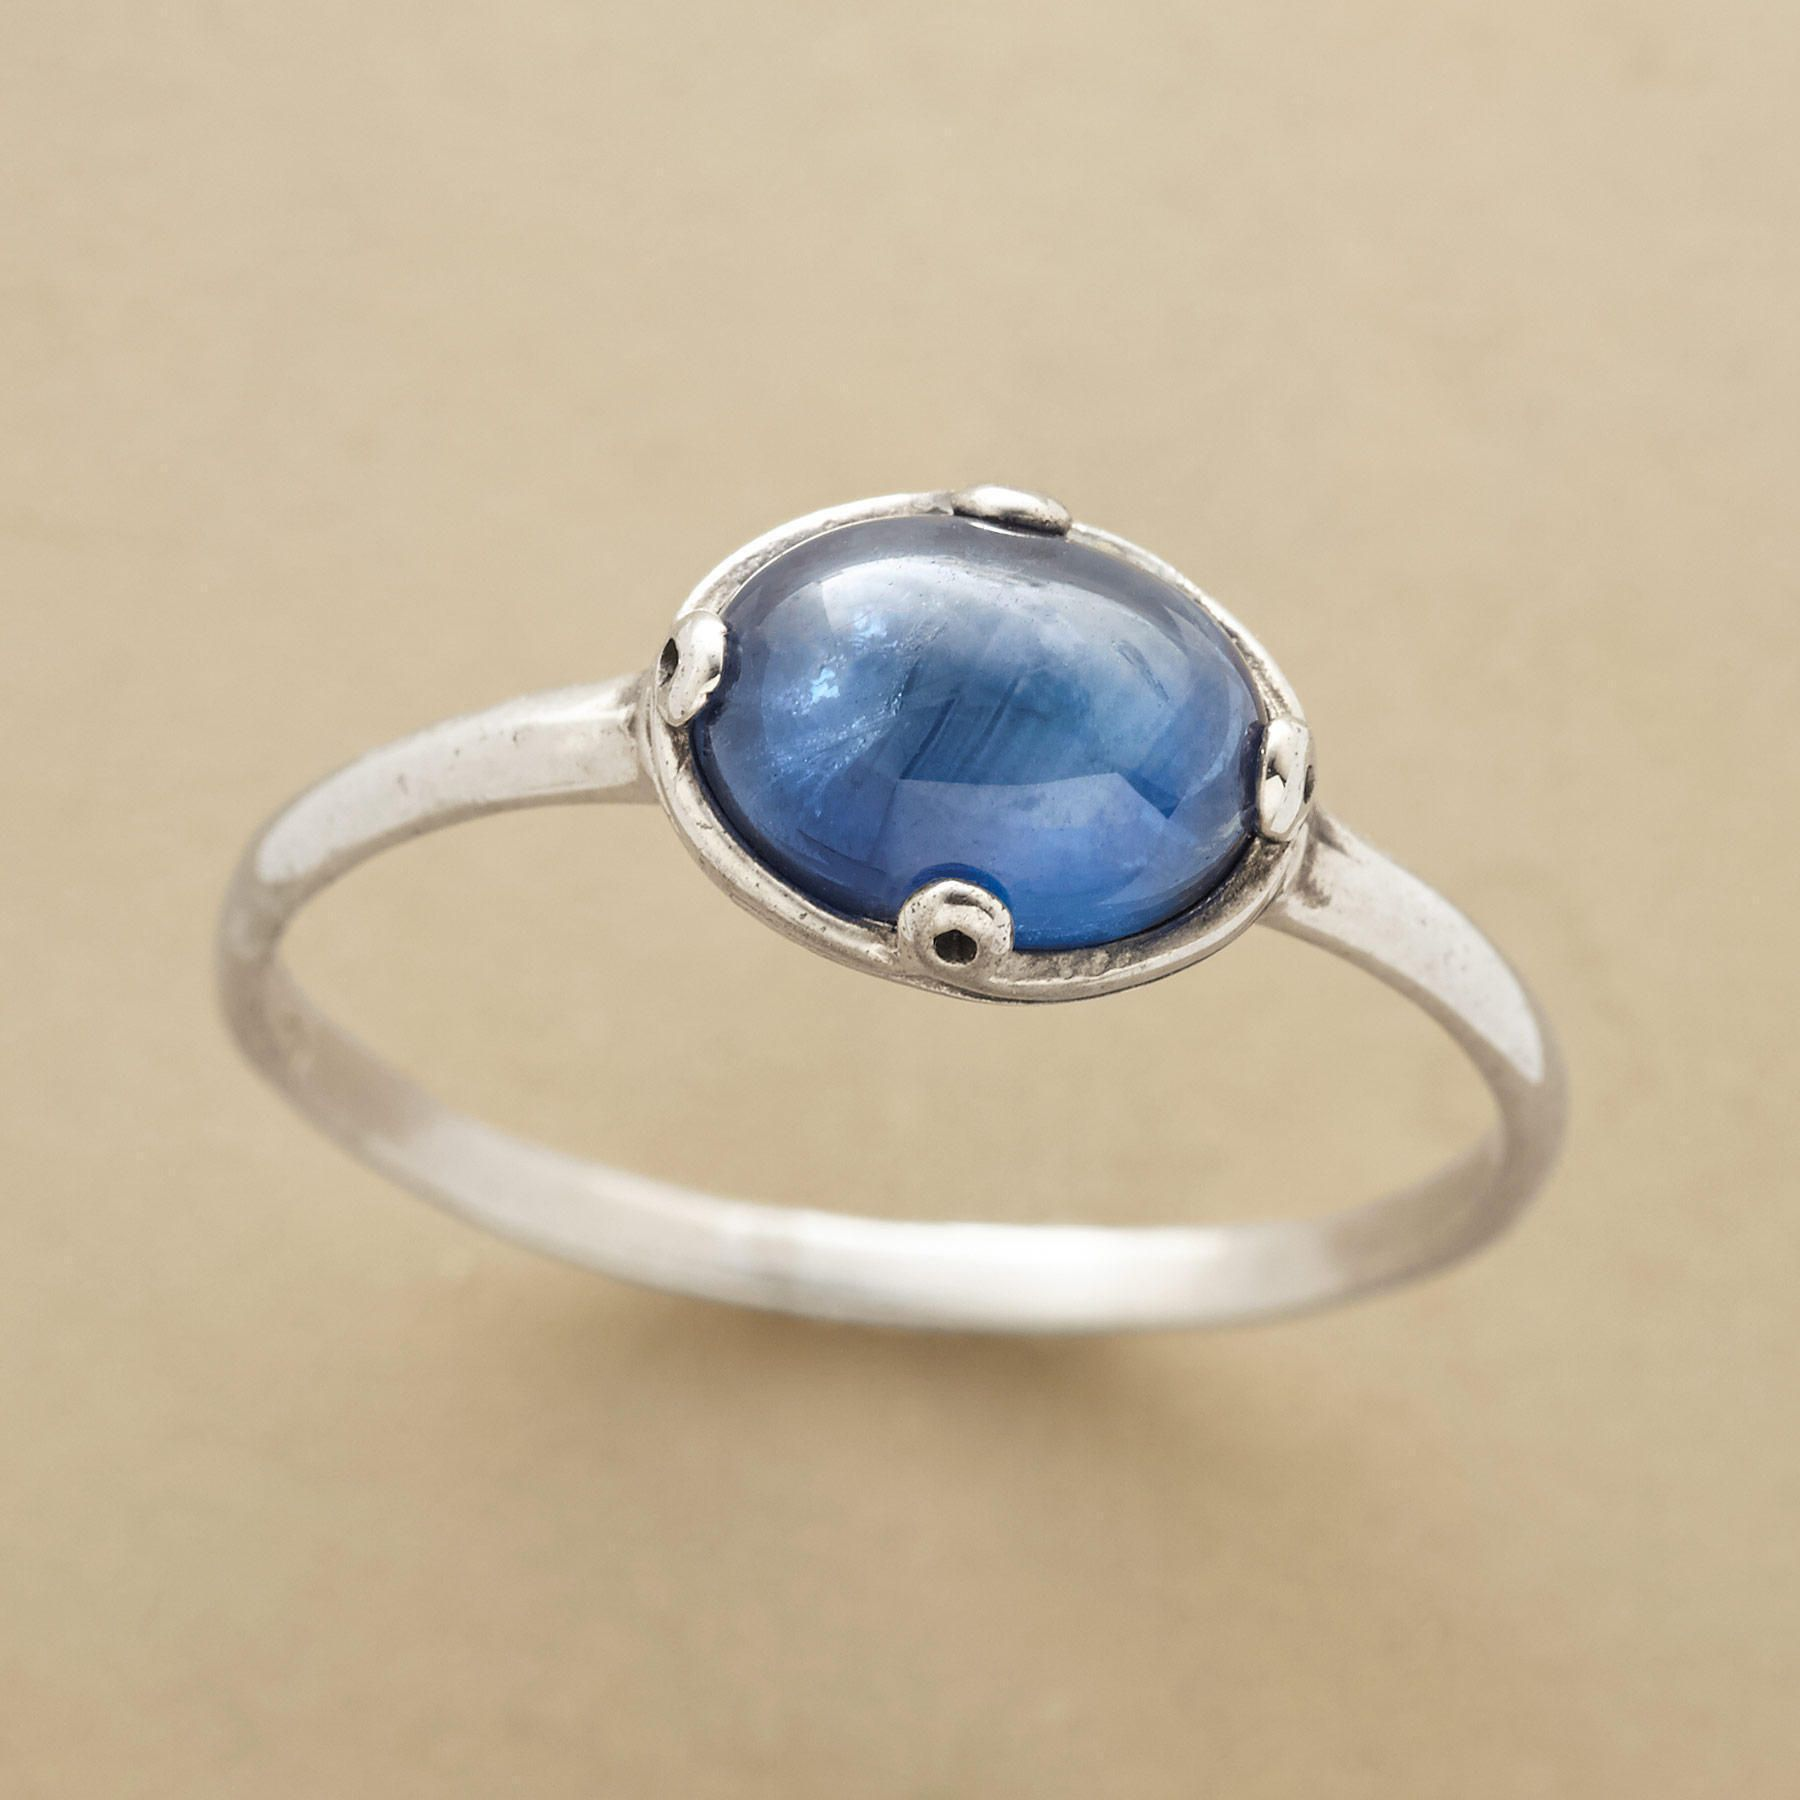 HEAVENLY SAPPHIRE RING--This heavenly oval sapphire ring is your own bit of paradise—a sterling silver ring set with an oval cabochon sapphire. Whole sizes 5 to 9.